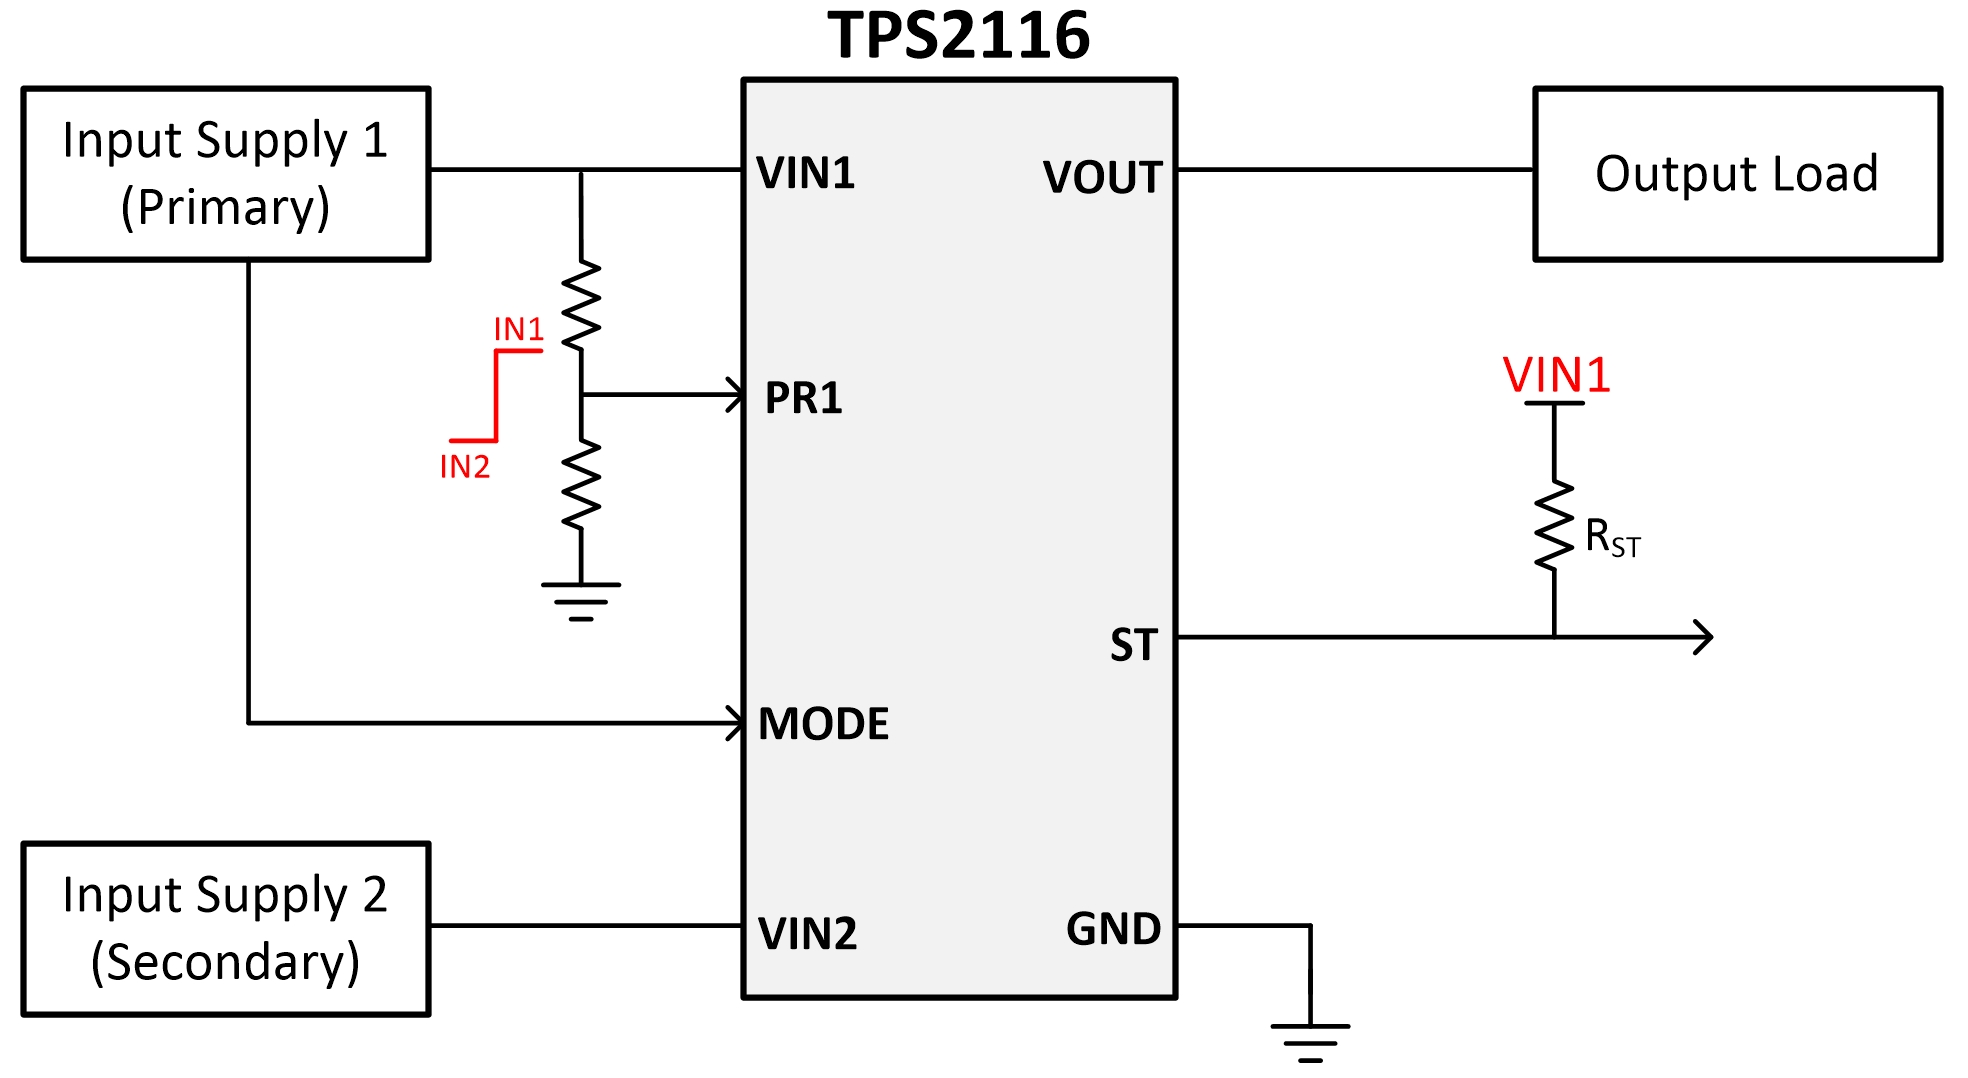 TPS2116 1.6 V to 5.5 V, 40 mΩ, 2.5 A, Low-IQ Priority Power Multiplexer